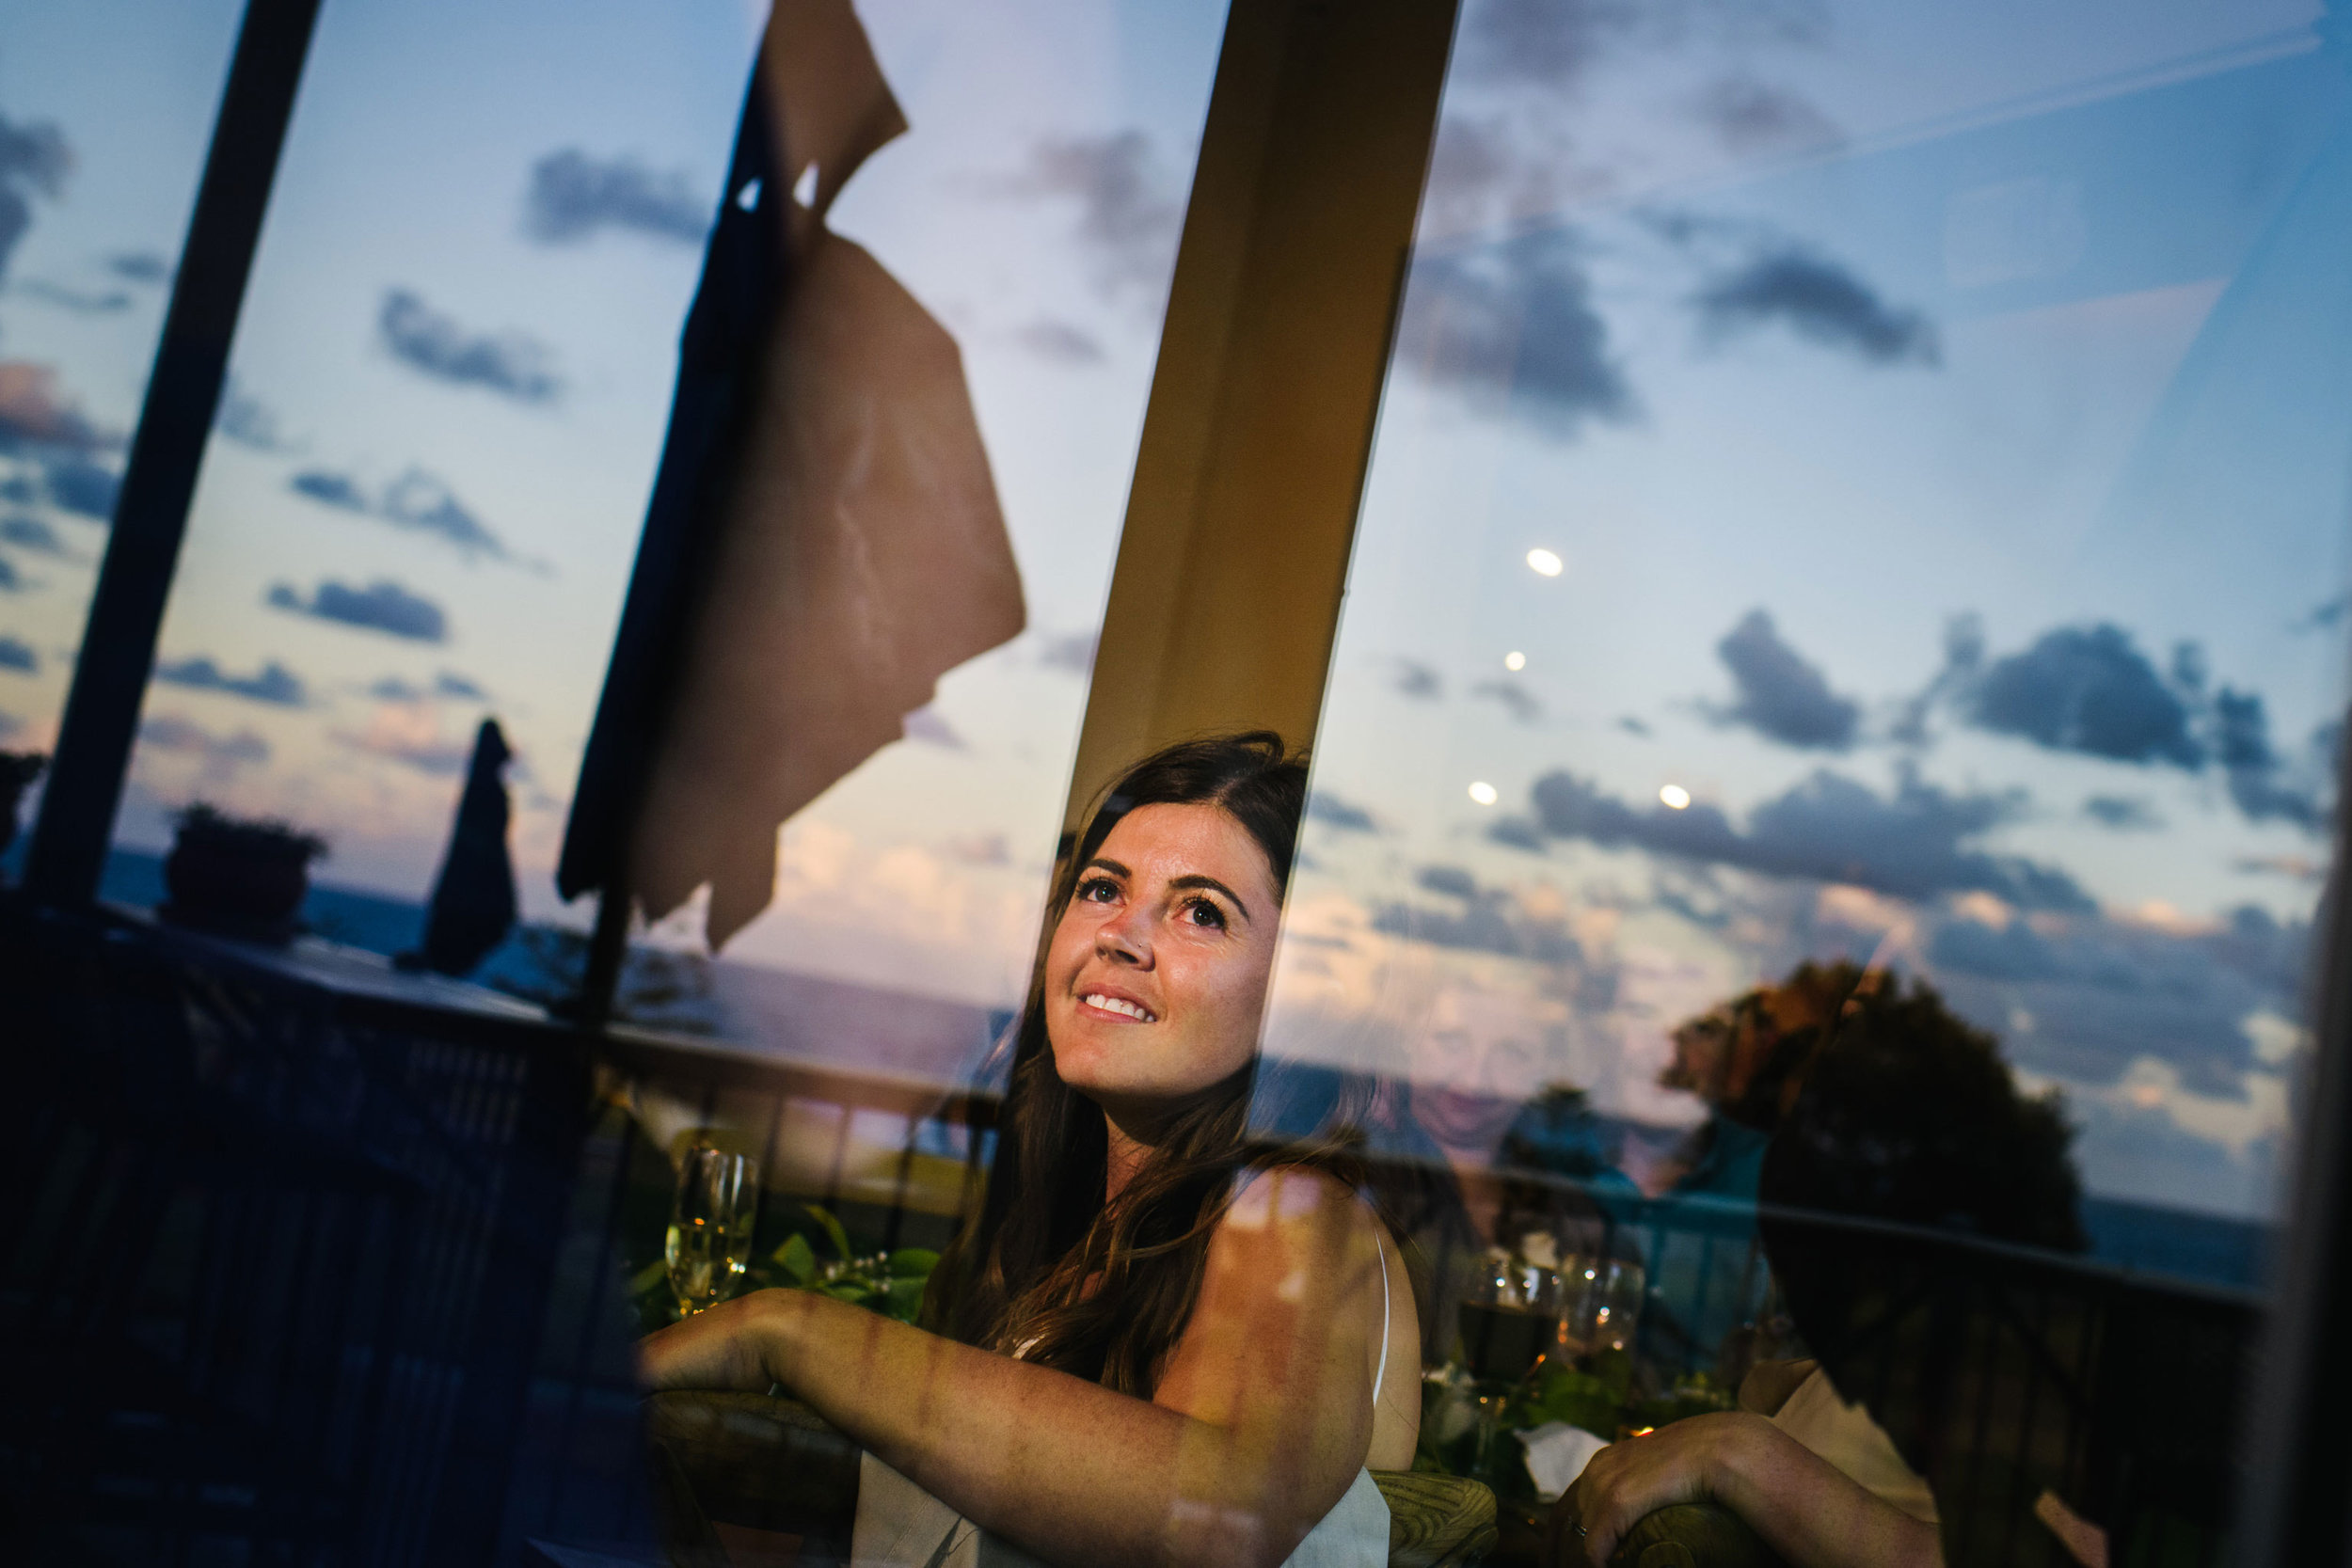 Bride smiling with the evening sky reflected in windows